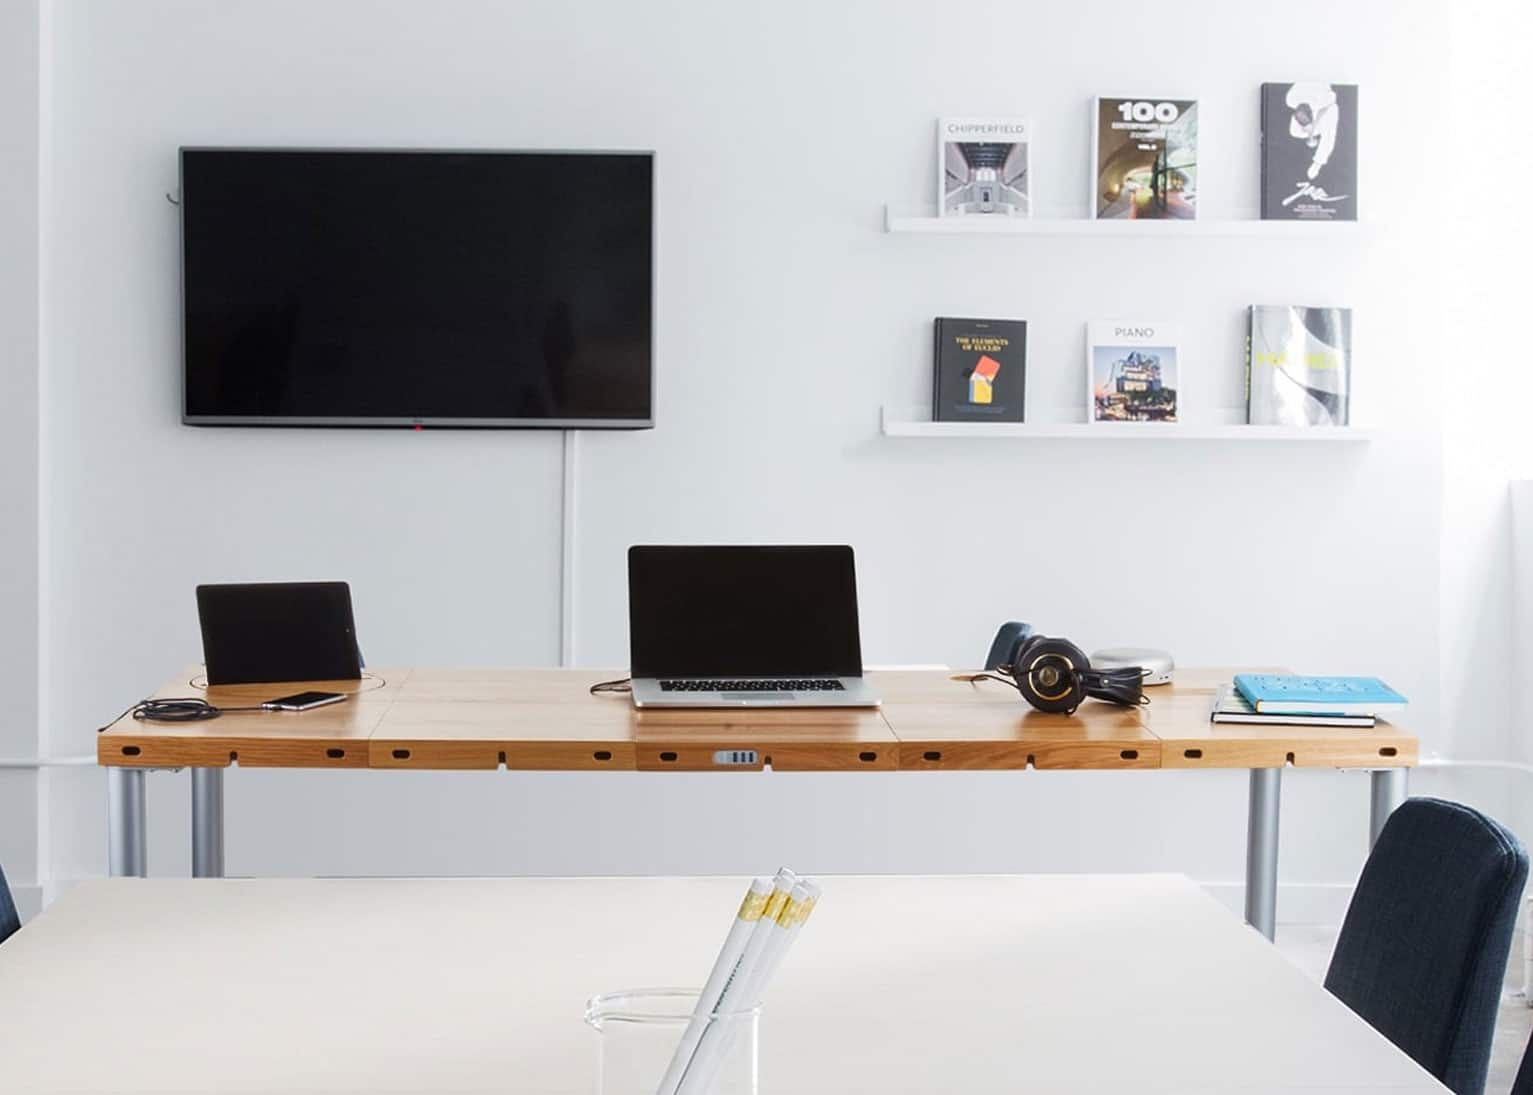 The Ever-Changing Modular Desk by Modulos | iReviews